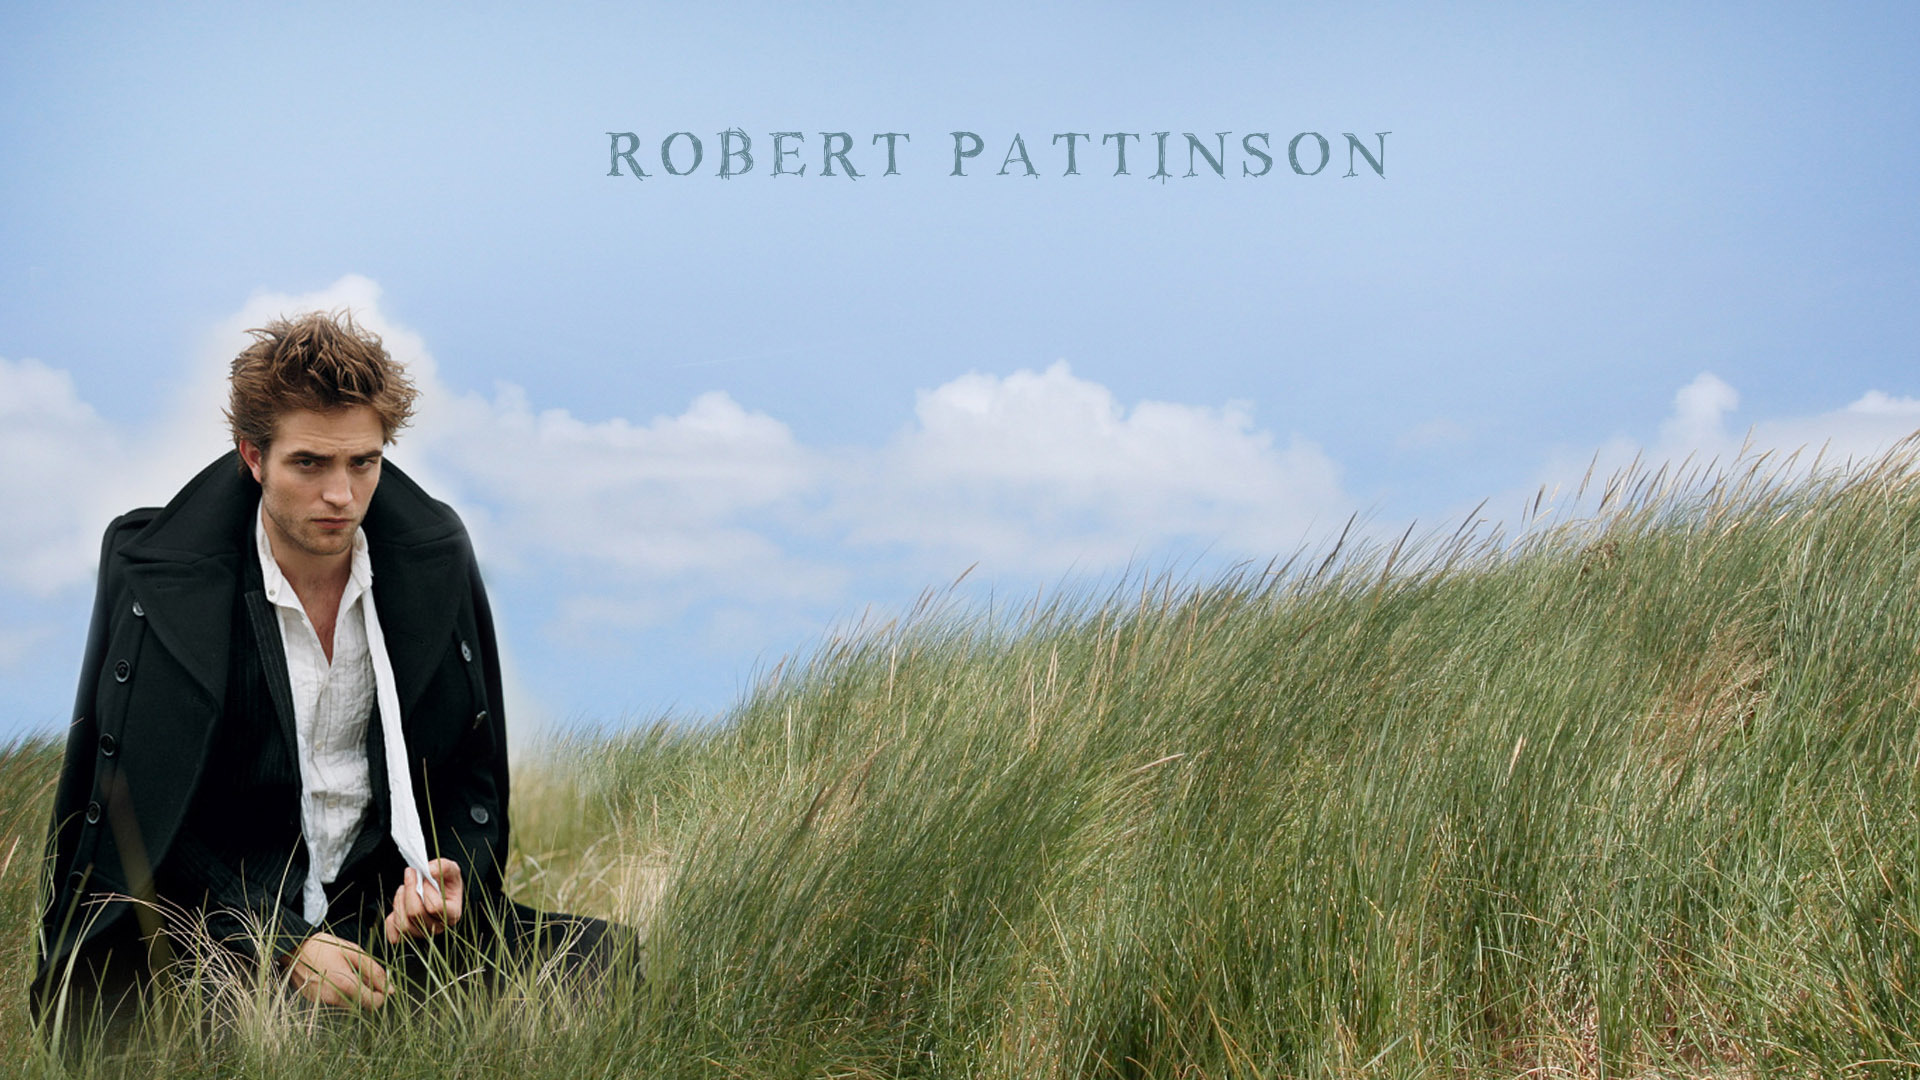 Robert Pattinson sitting in the grass